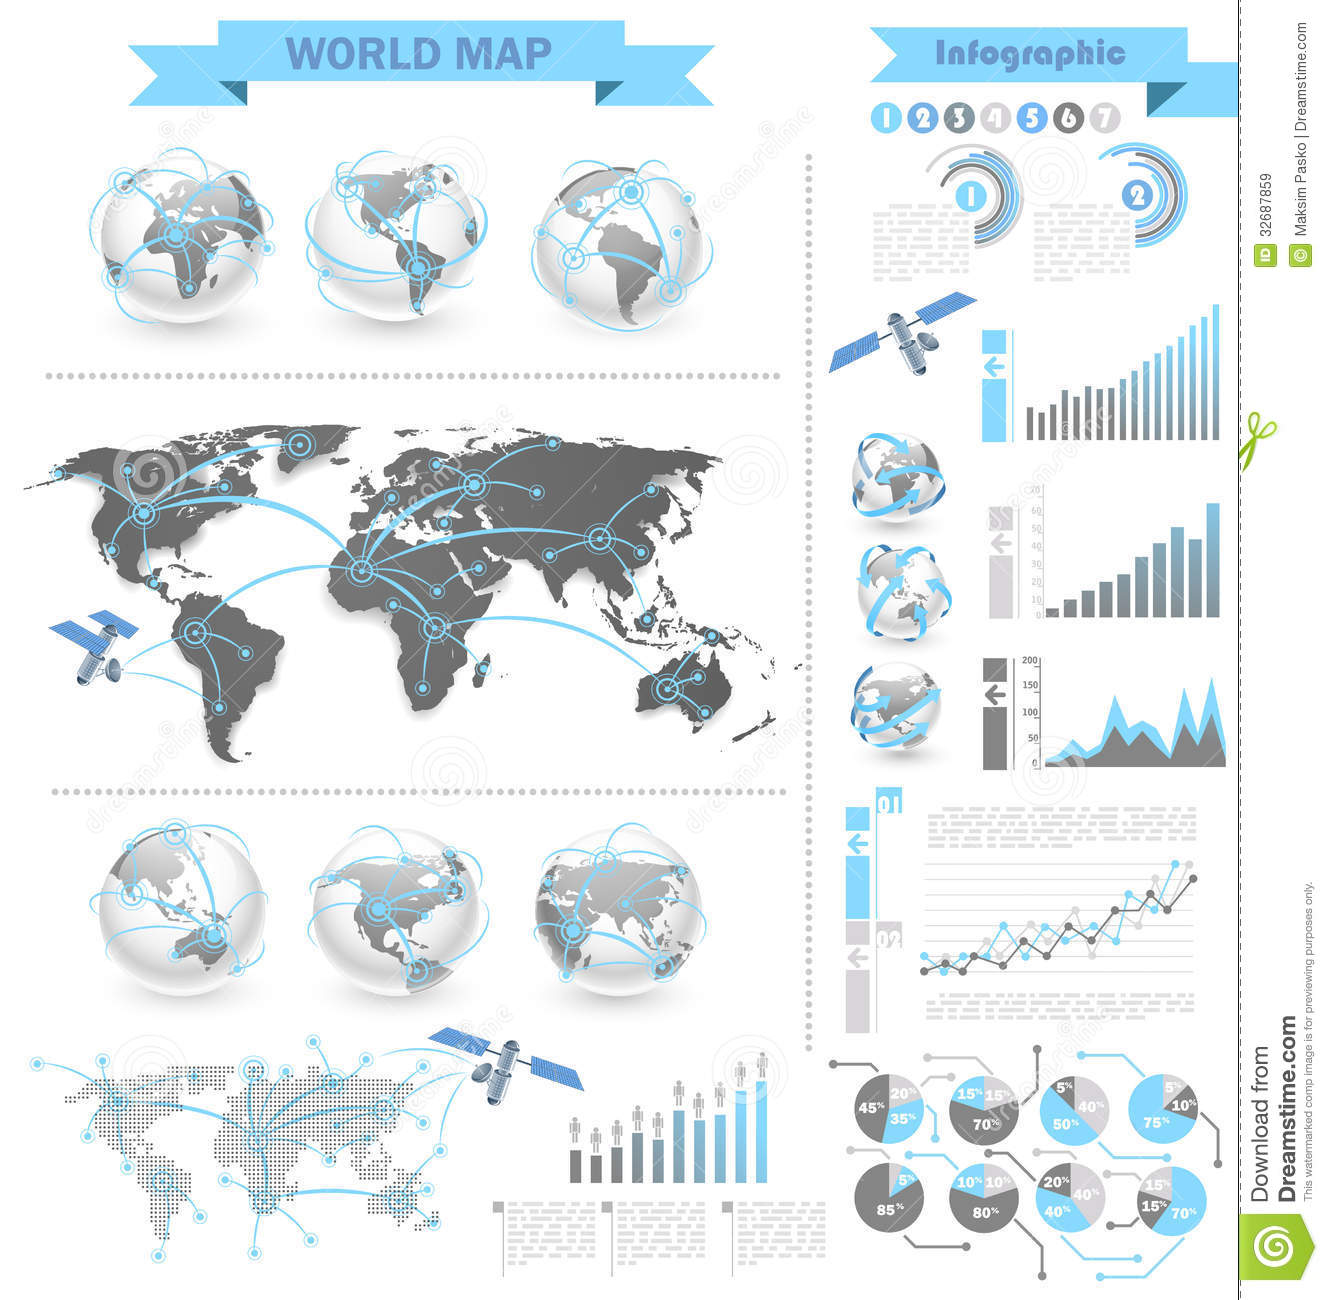 World map infographic stock vector illustration of symbol 32687859 world map infographic gumiabroncs Gallery